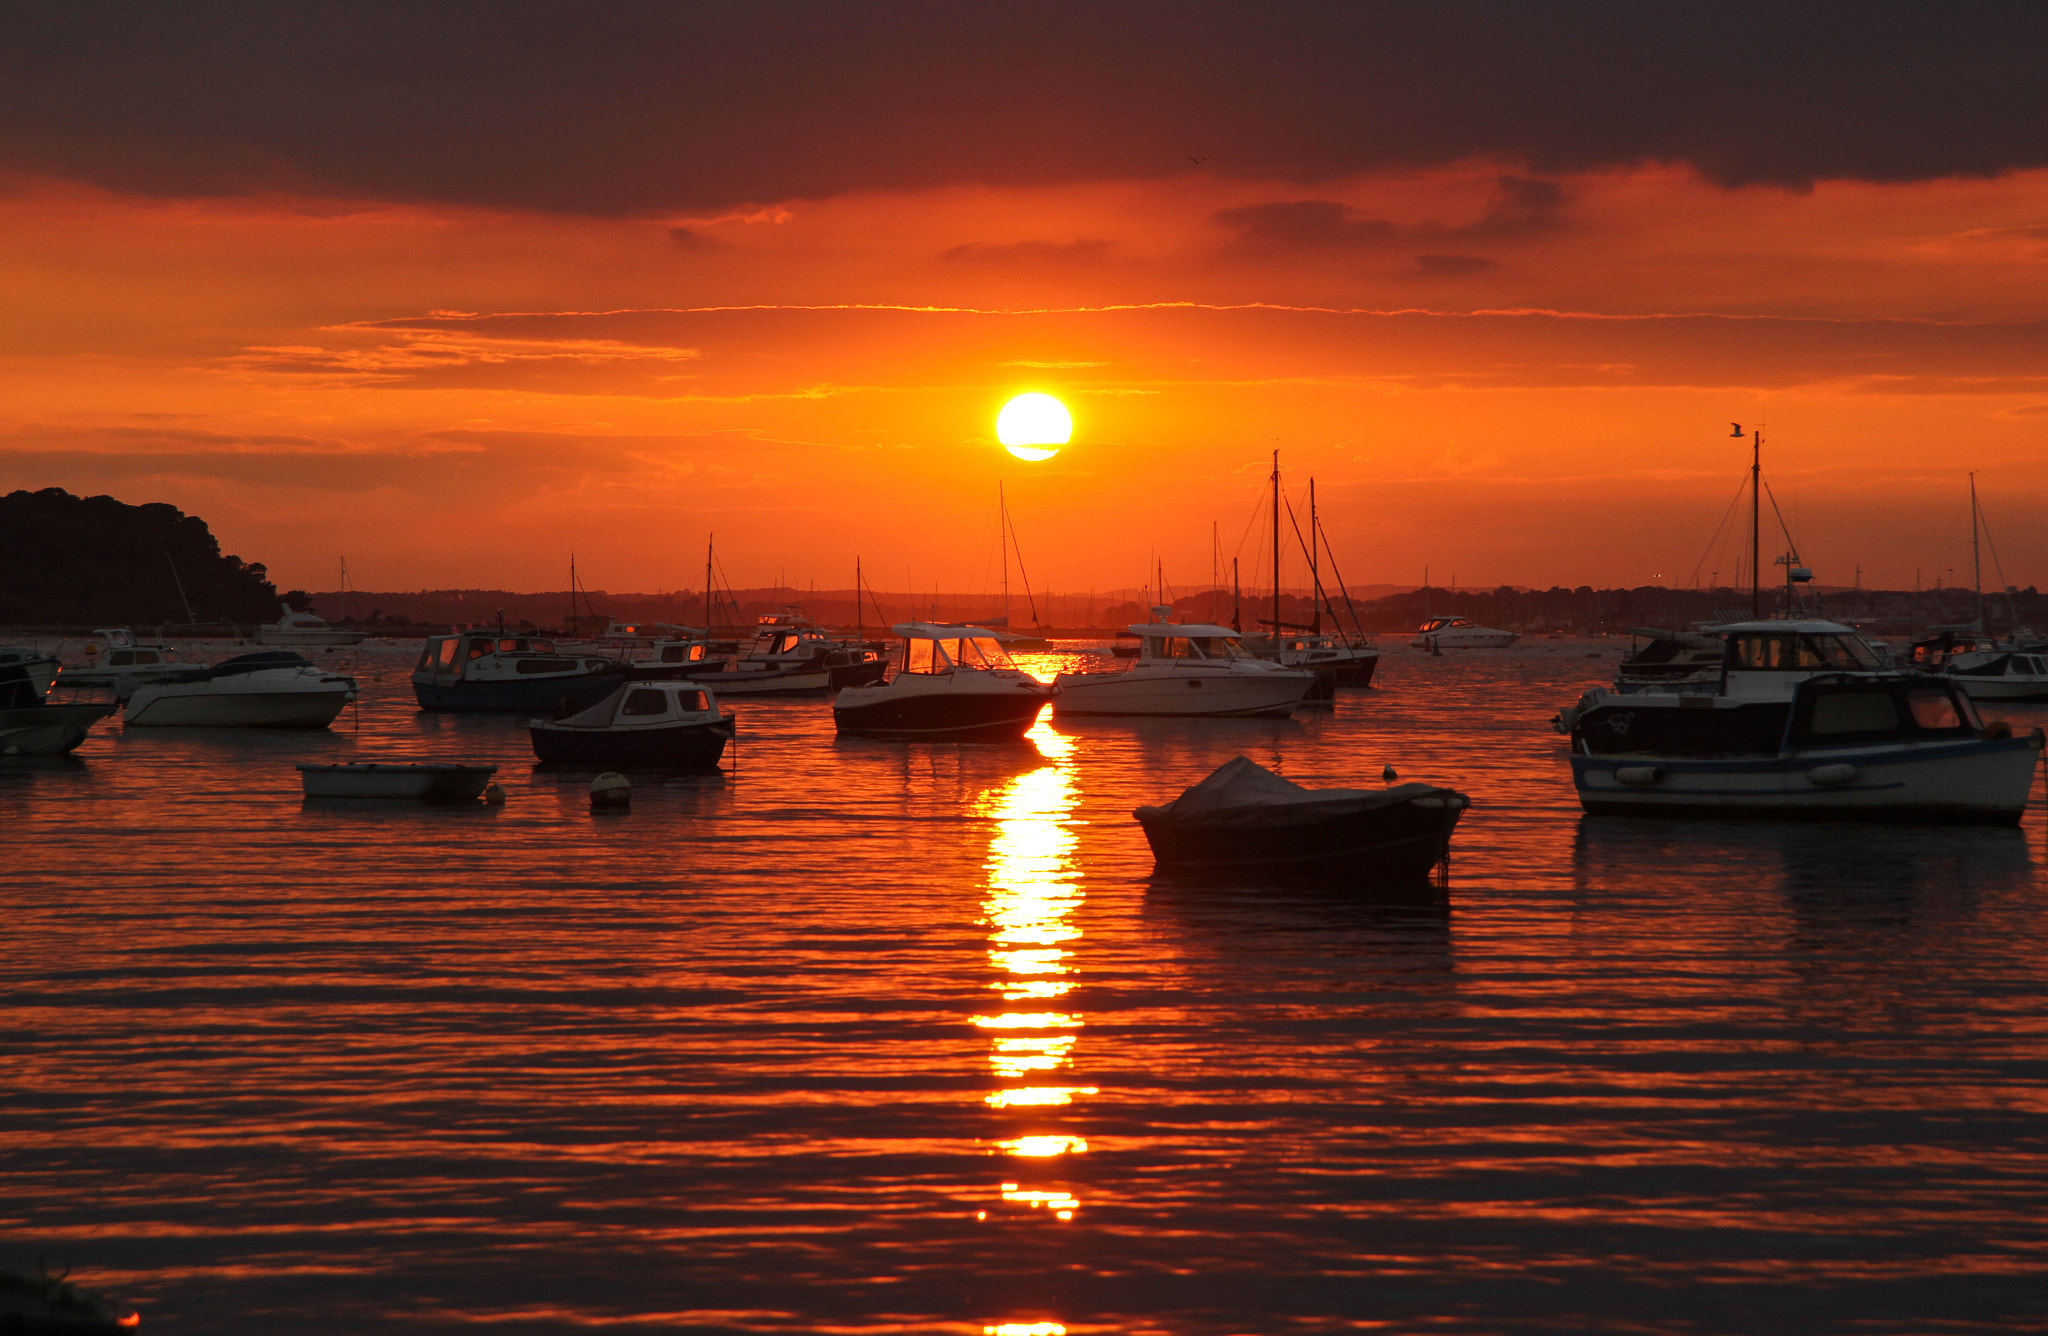 Photograph Amber Sunset by Lewis Blackburn on 500px